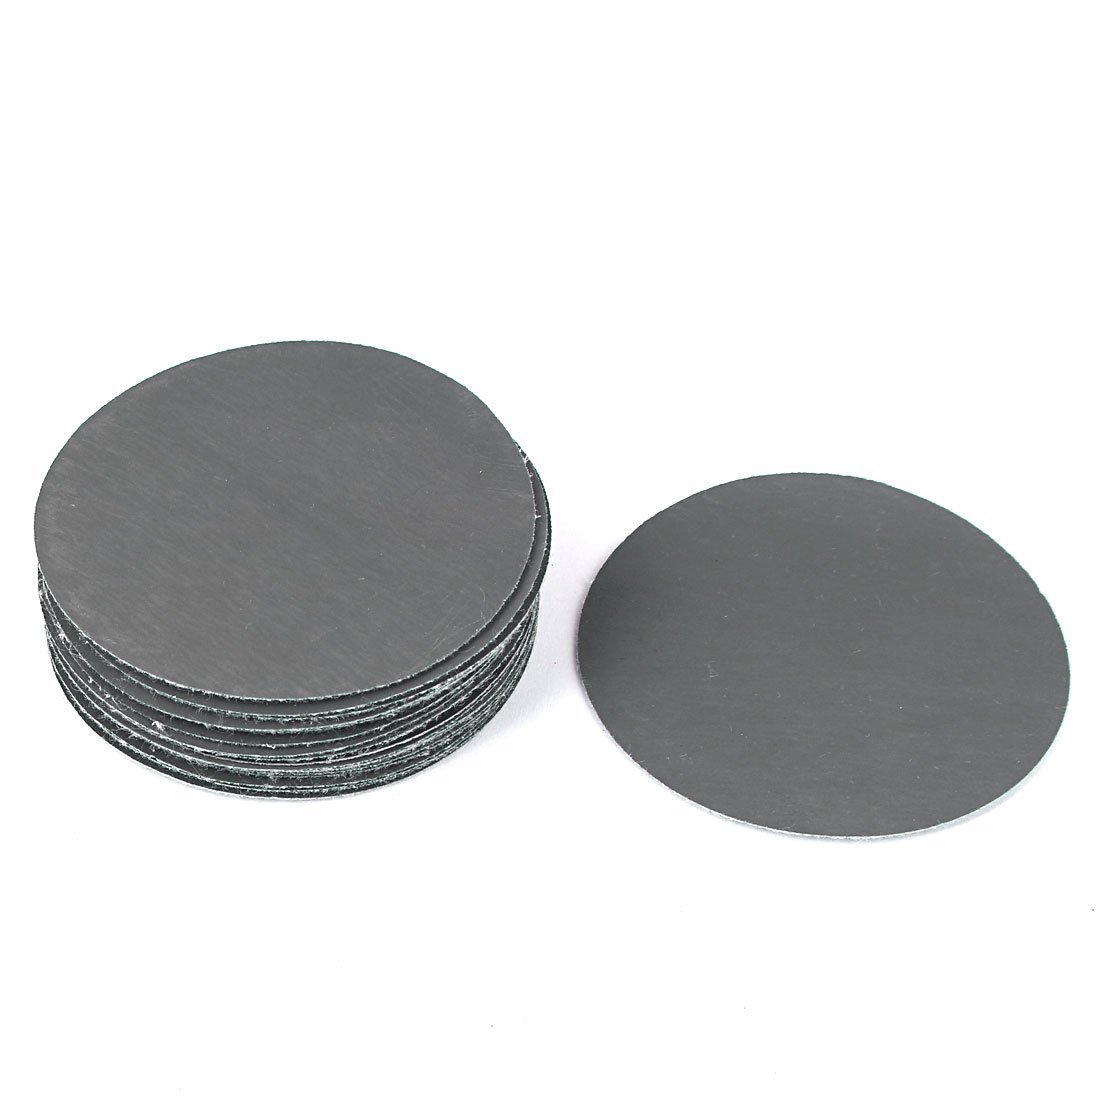 Uxcell a16031000ux0909 3inch Dia 3000 Grit Abrasive Round Sanding Disc Sandpaper 20pcs (Pack of 20)